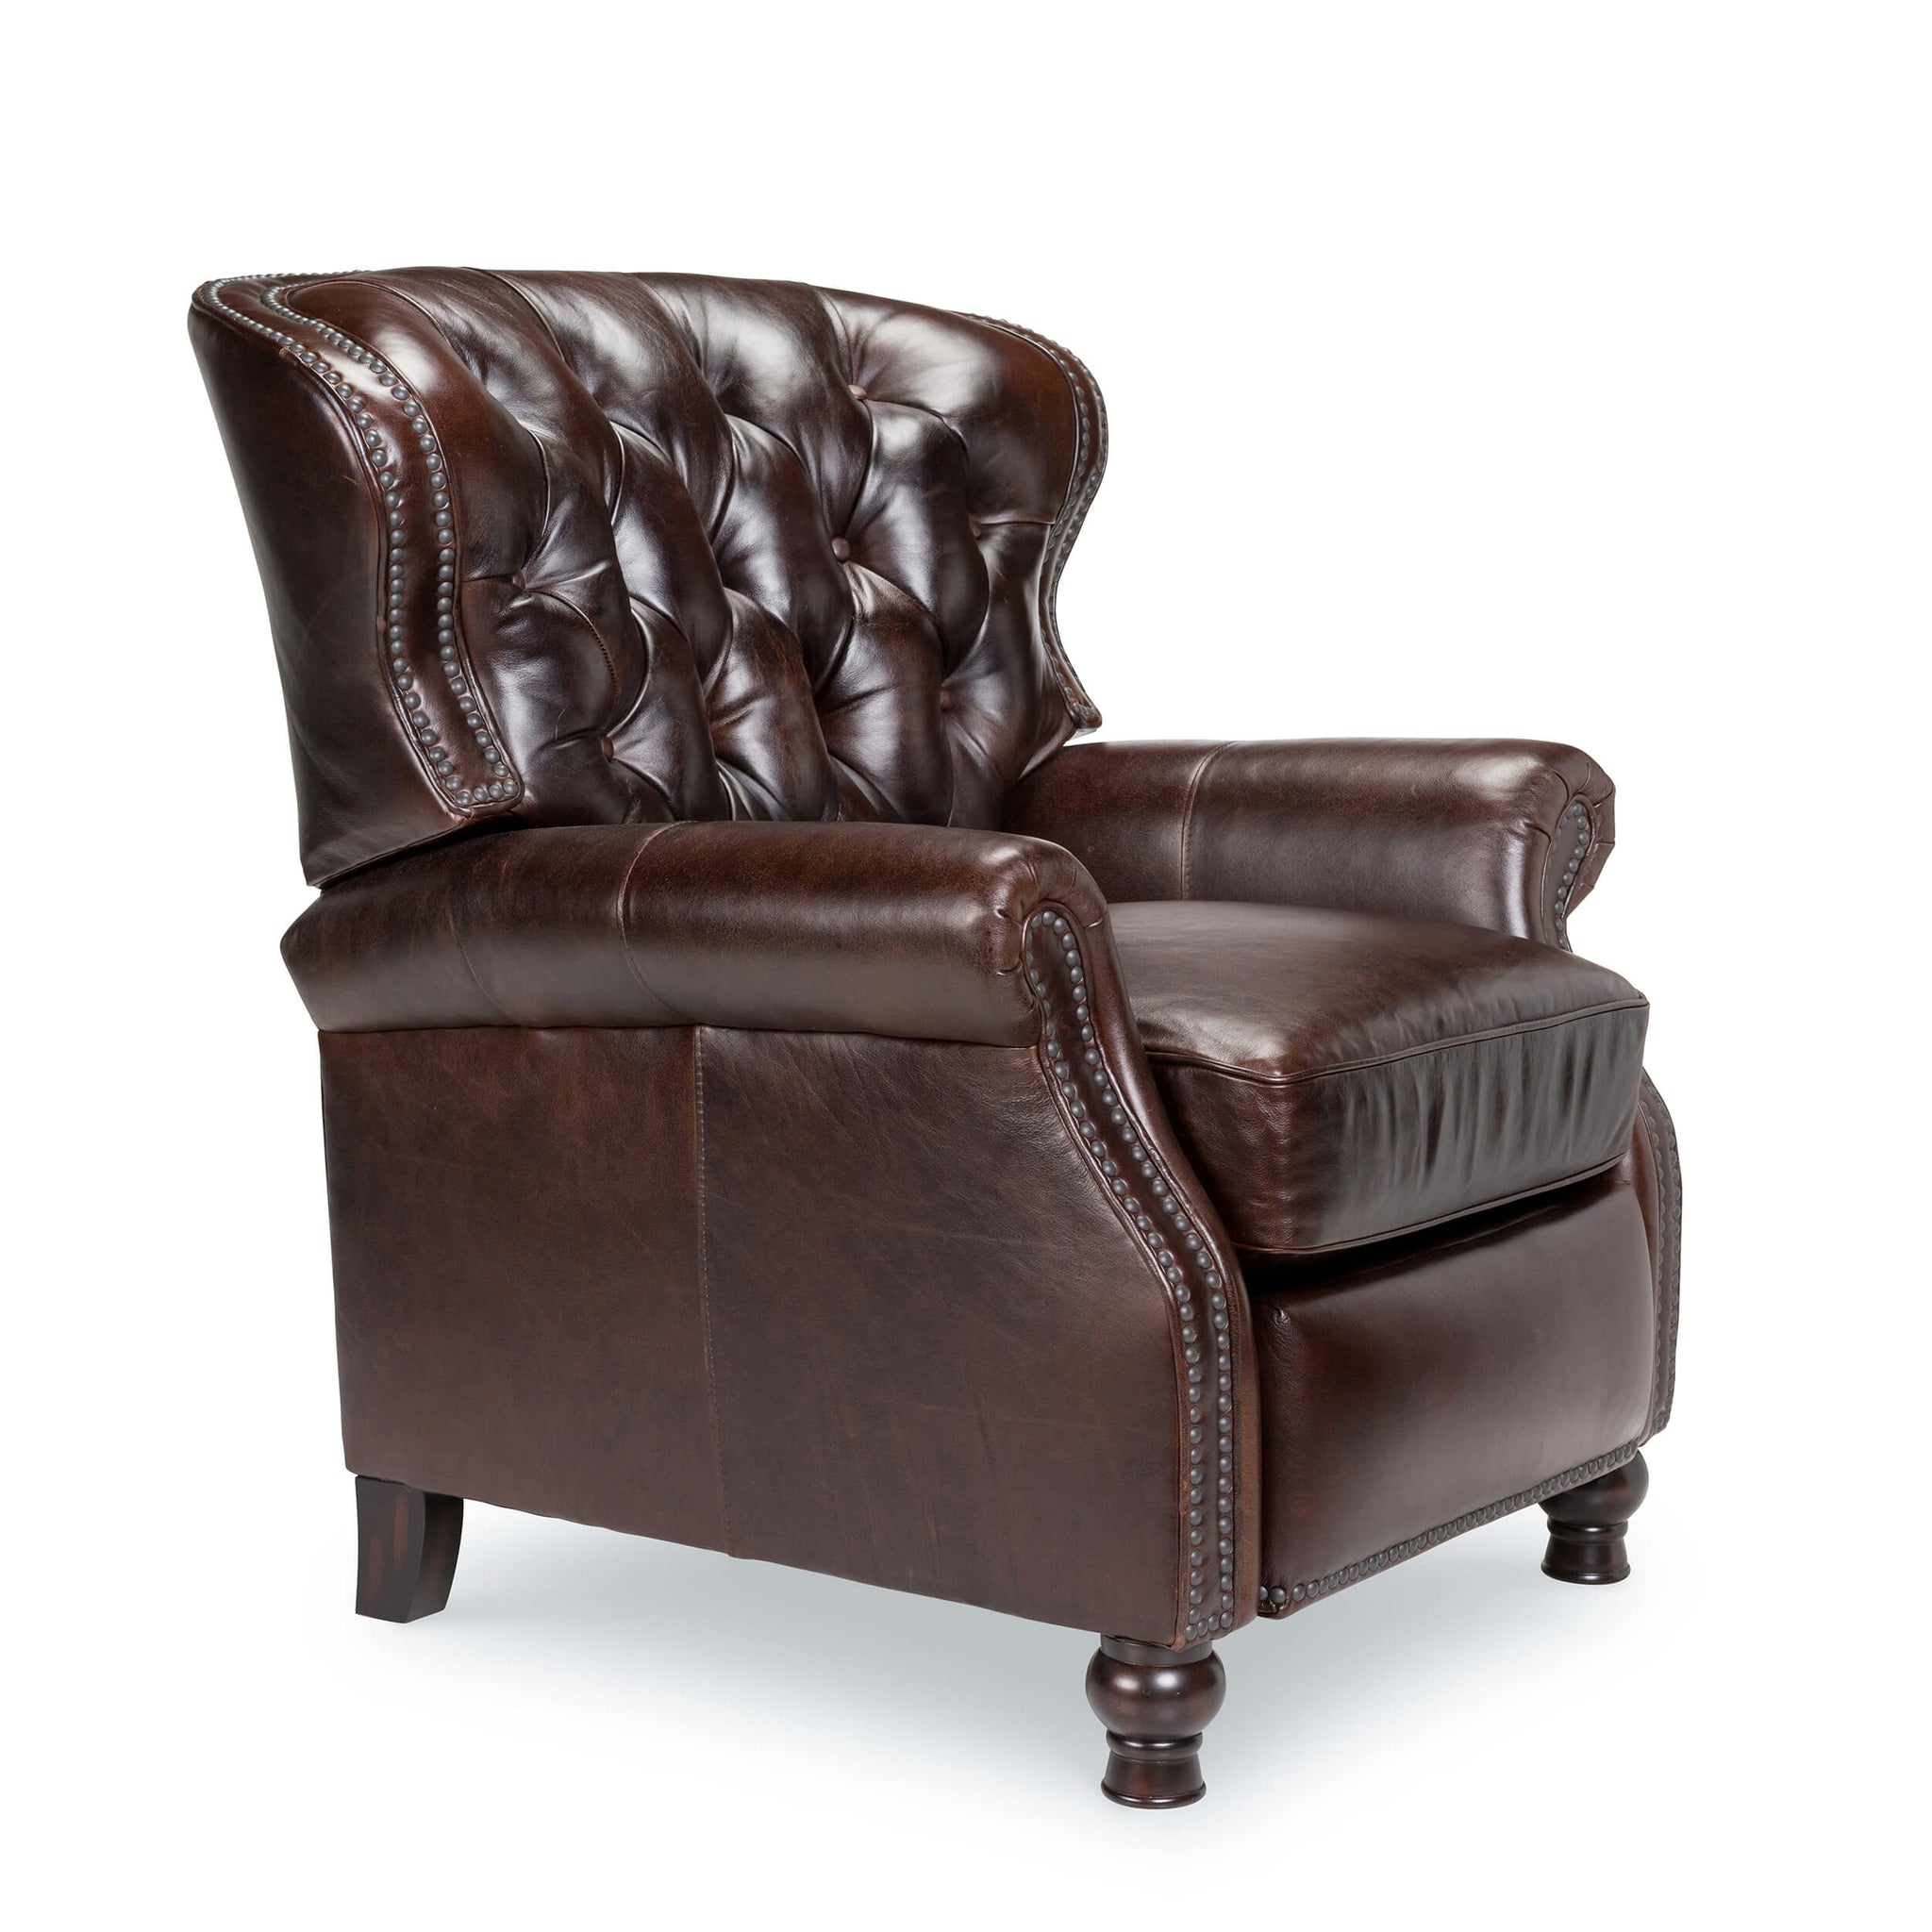 Opulence Home Cambridge Recliner Leather Shalimar Cocoa 2568